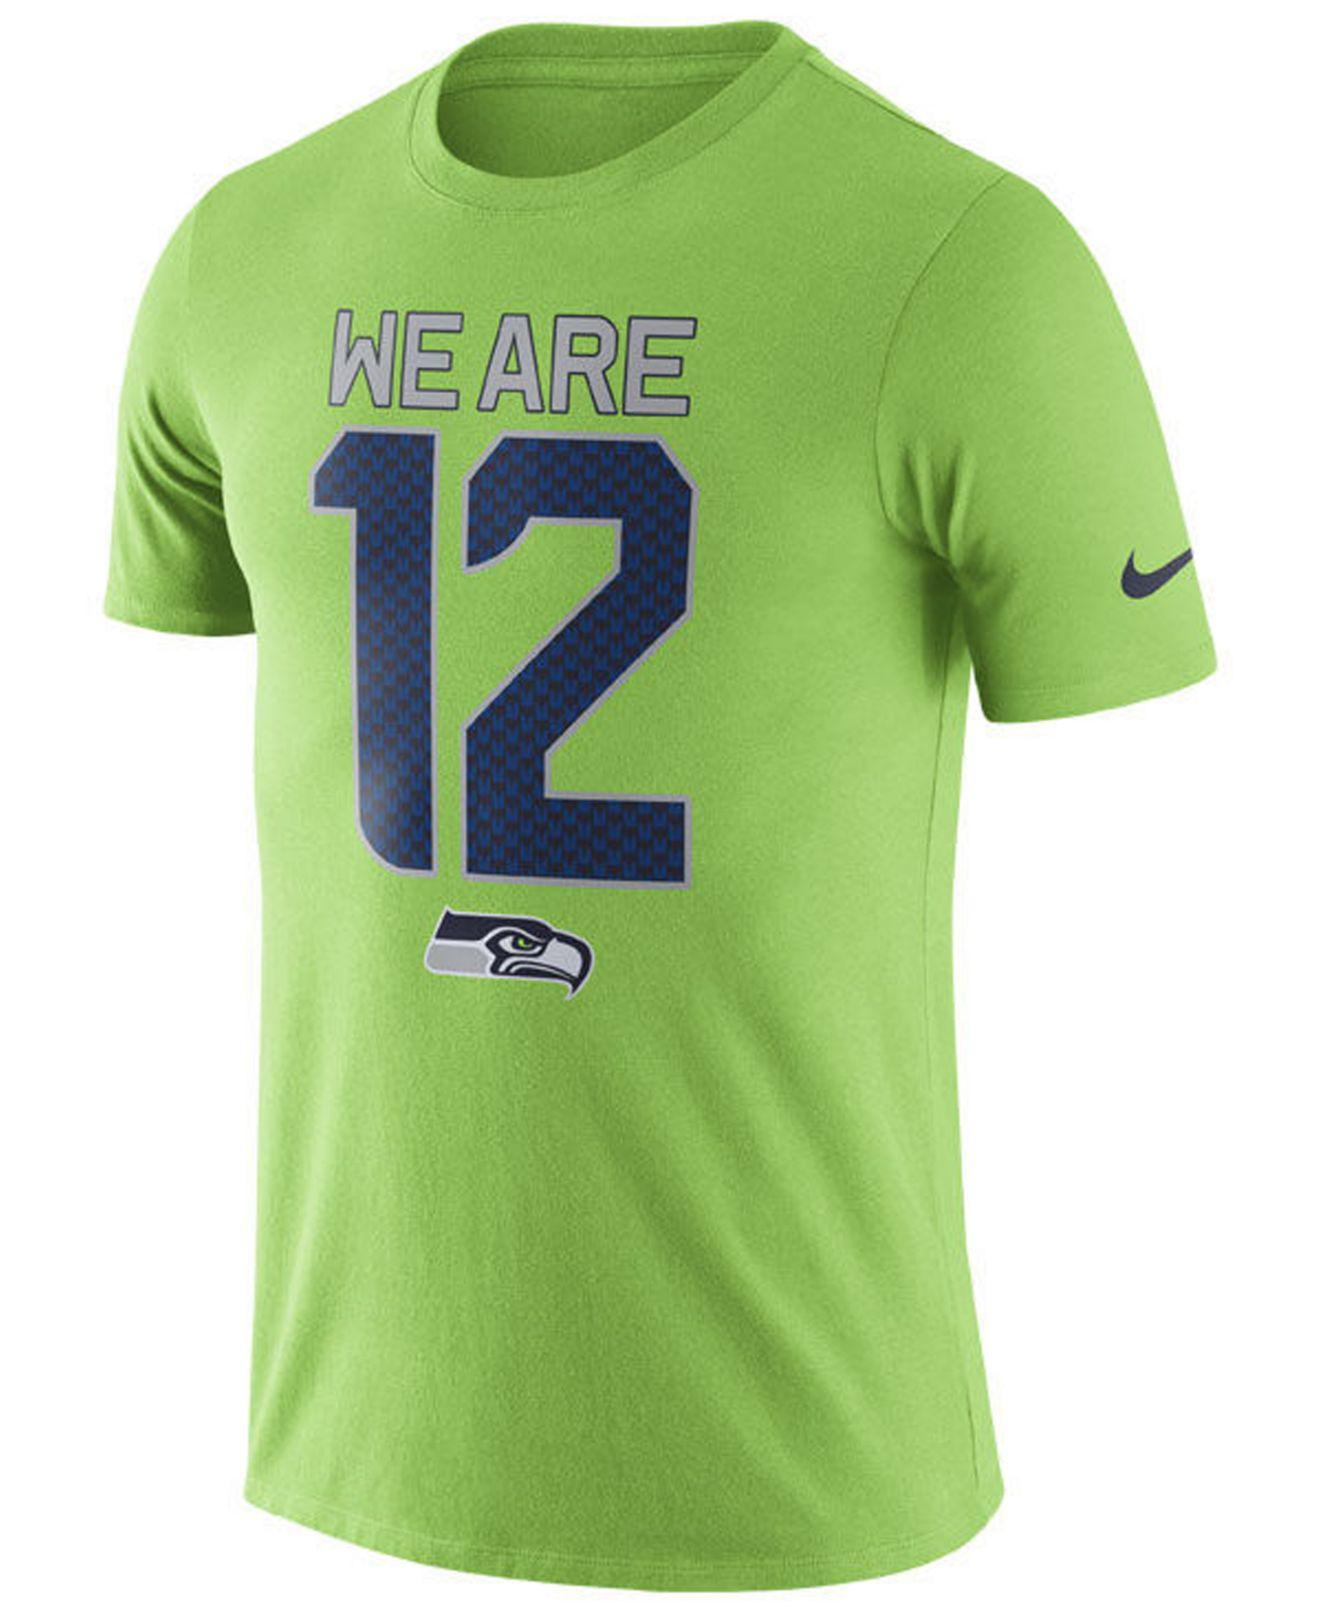 8a80e2b0 Nike Dri-fit (nfl Seahawks) T-shirt in Green for Men - Save 28% - Lyst